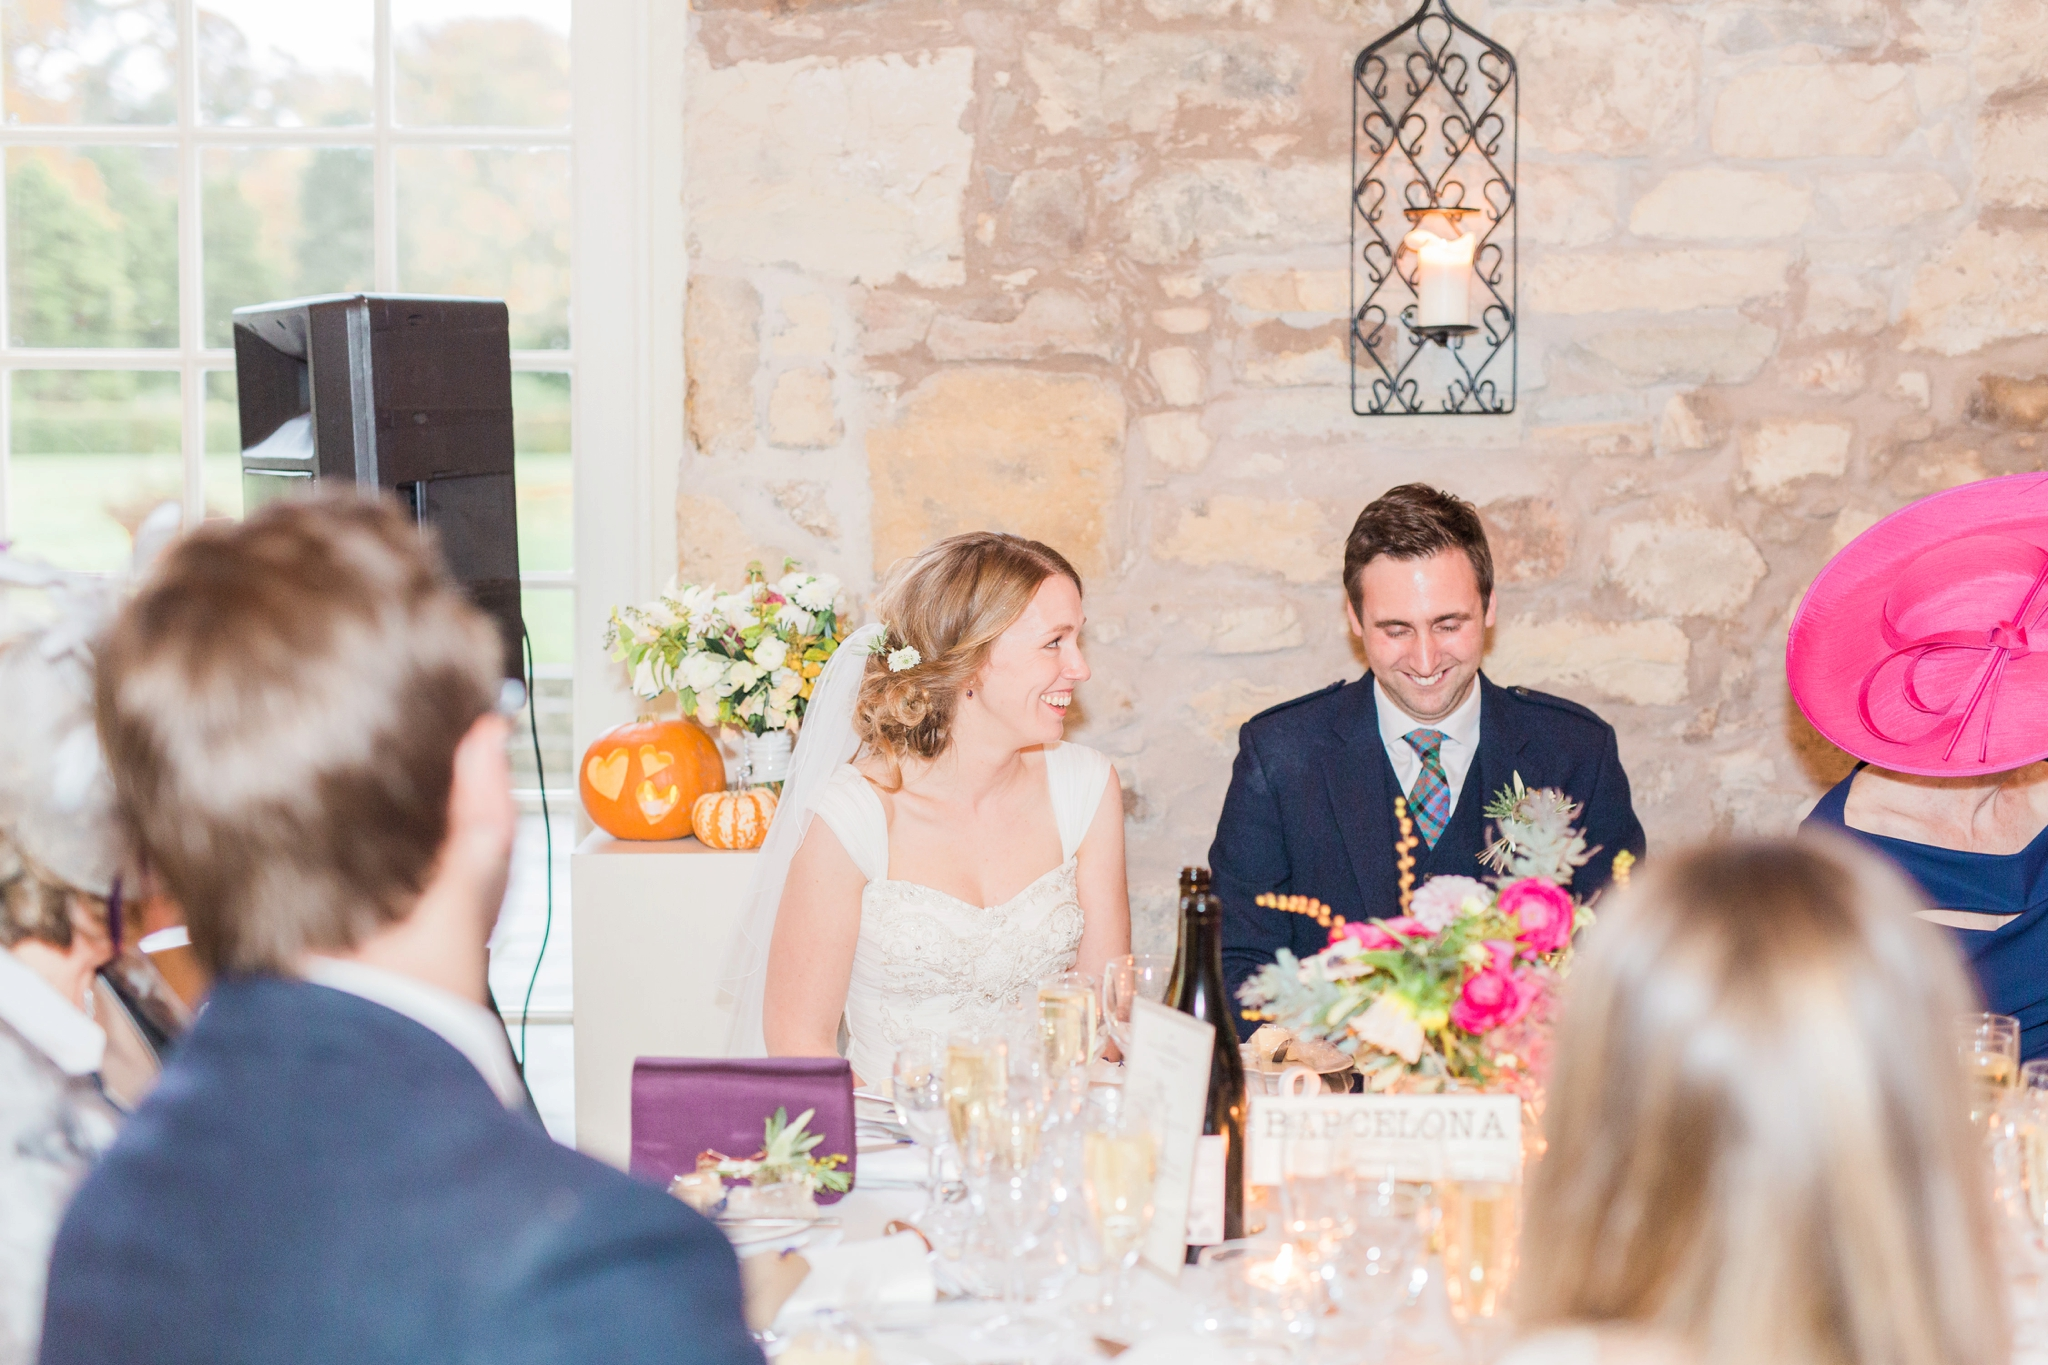 Suzanne_li_photography_kirknewton_wedding_0059.jpg